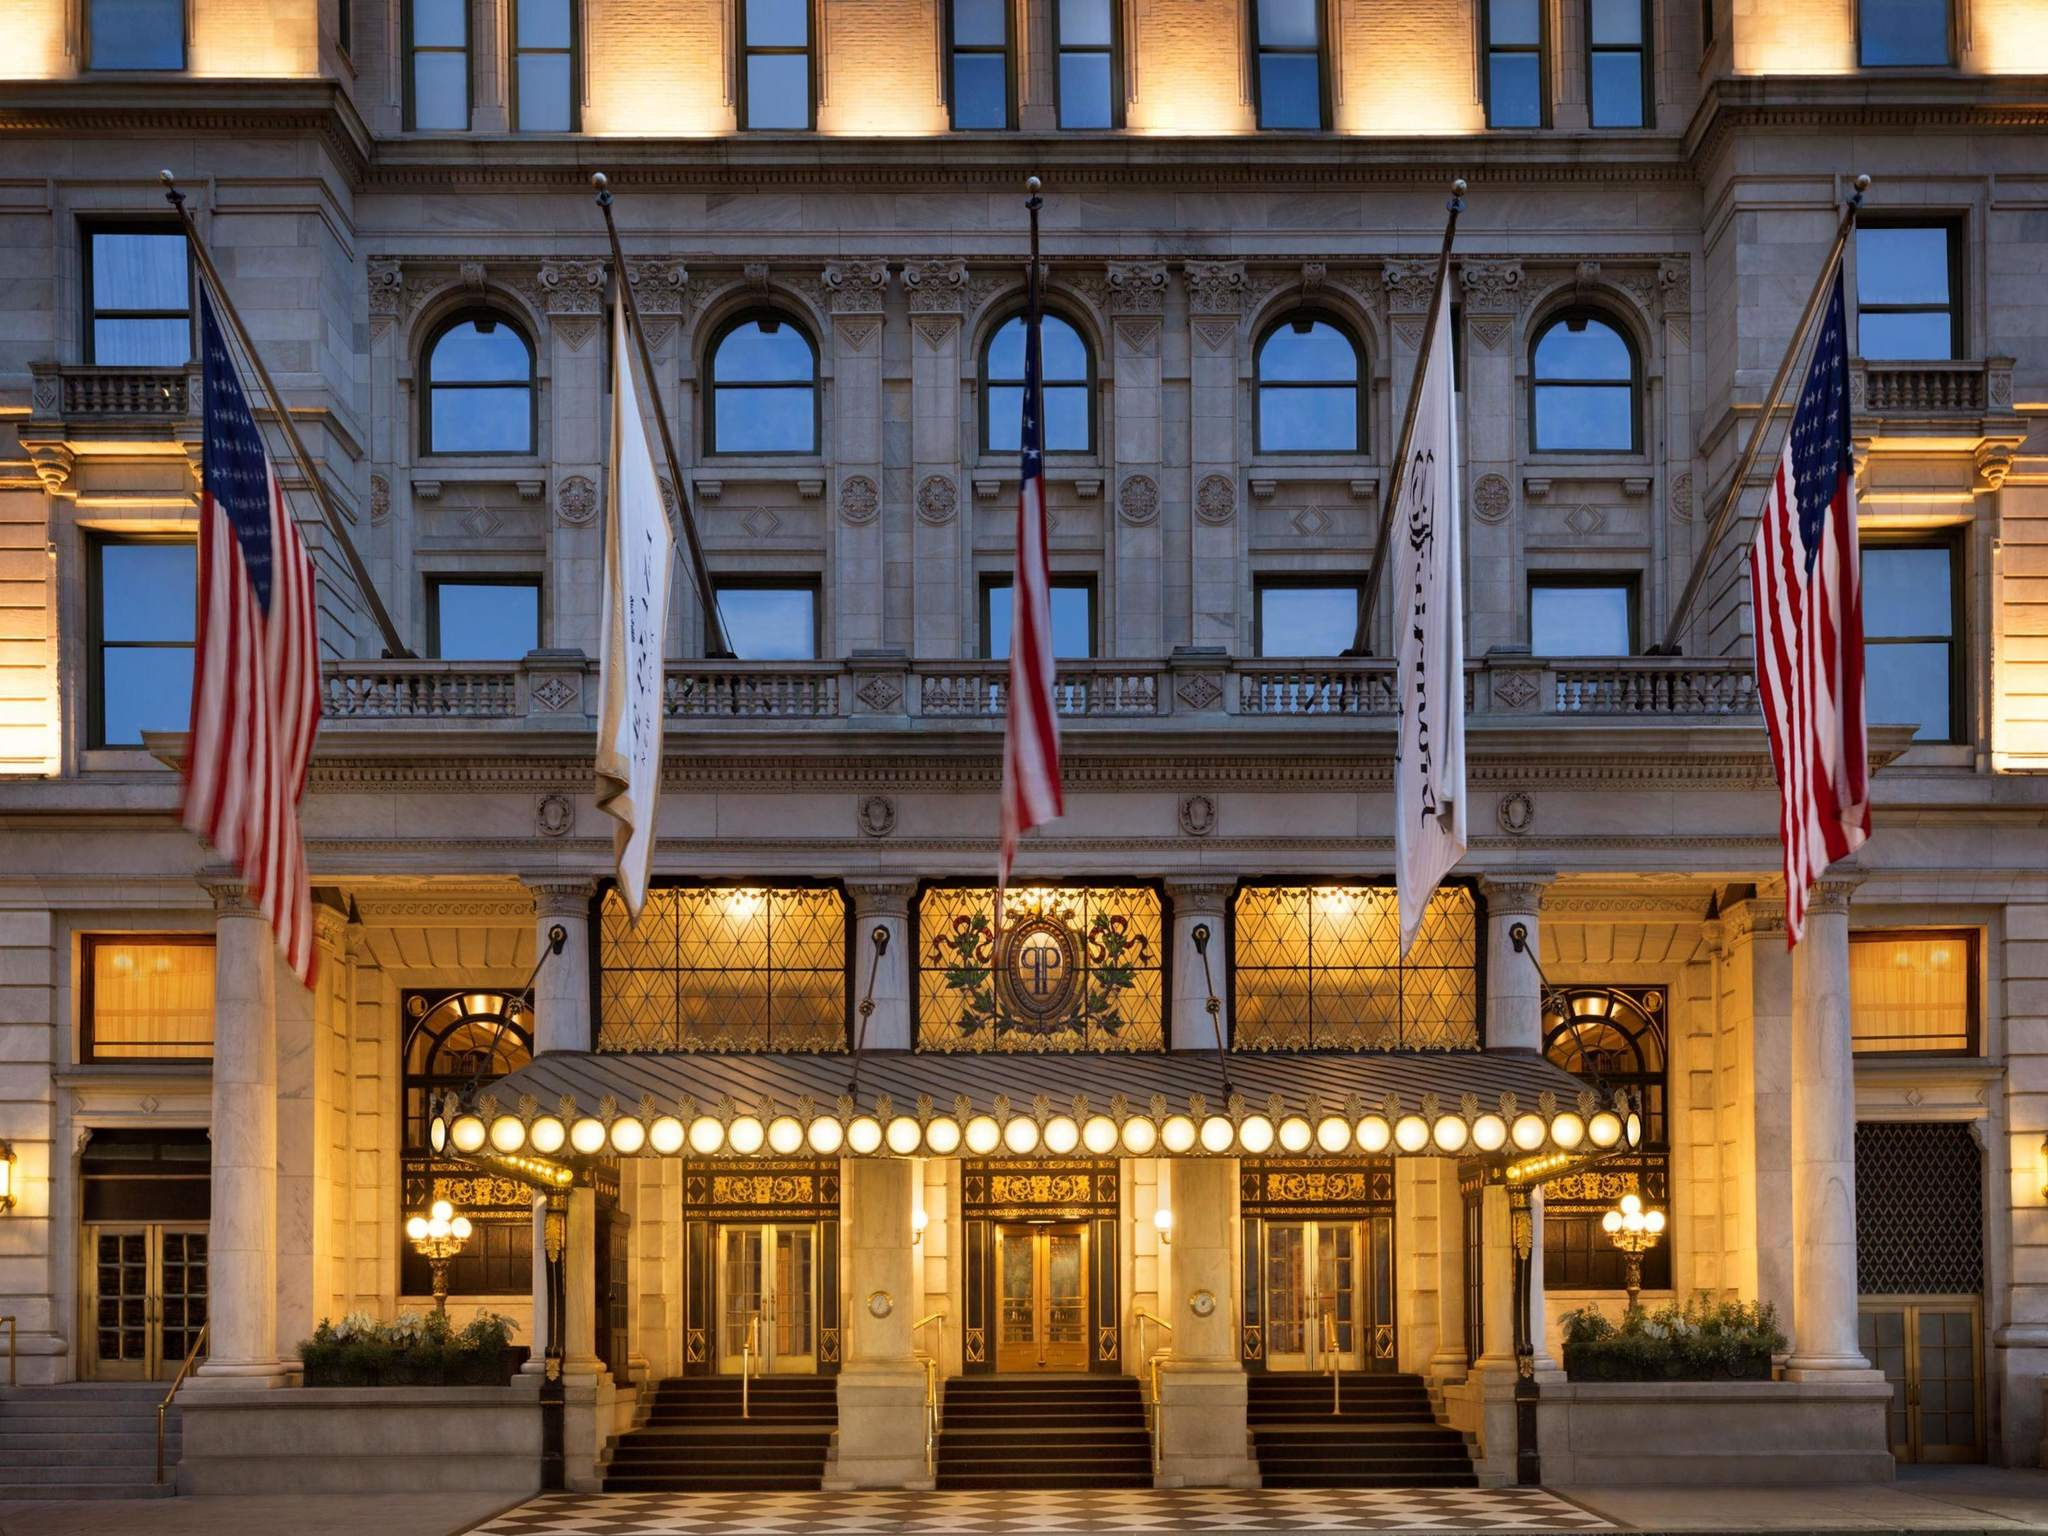 Hotel – The Plaza - A Fairmont Managed Hotel